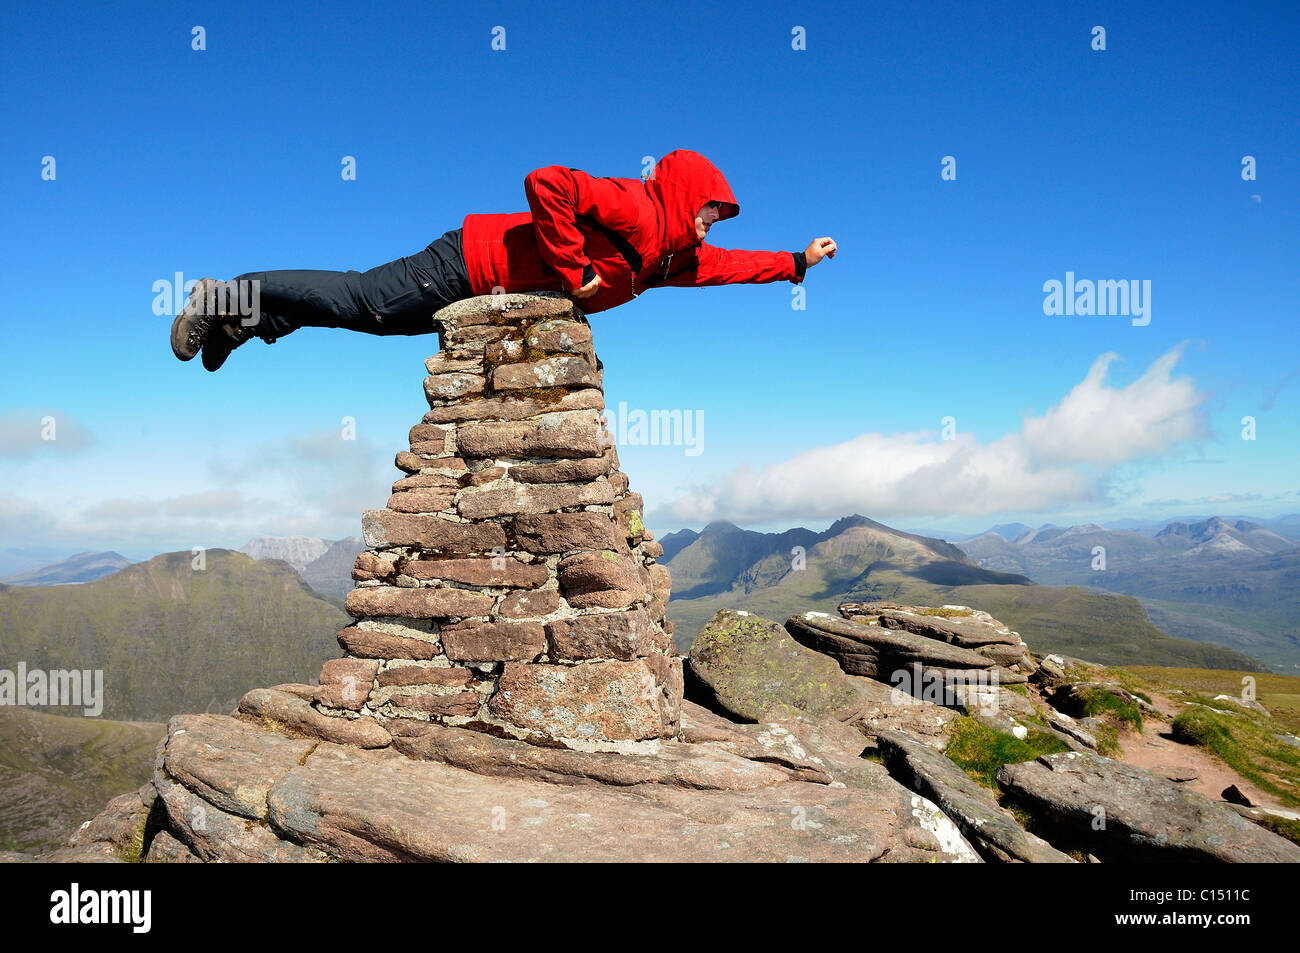 a-hillwalker-flying-like-superman-balanced-on-a-cairn-on-beinn-alligin-C1511C.jpg